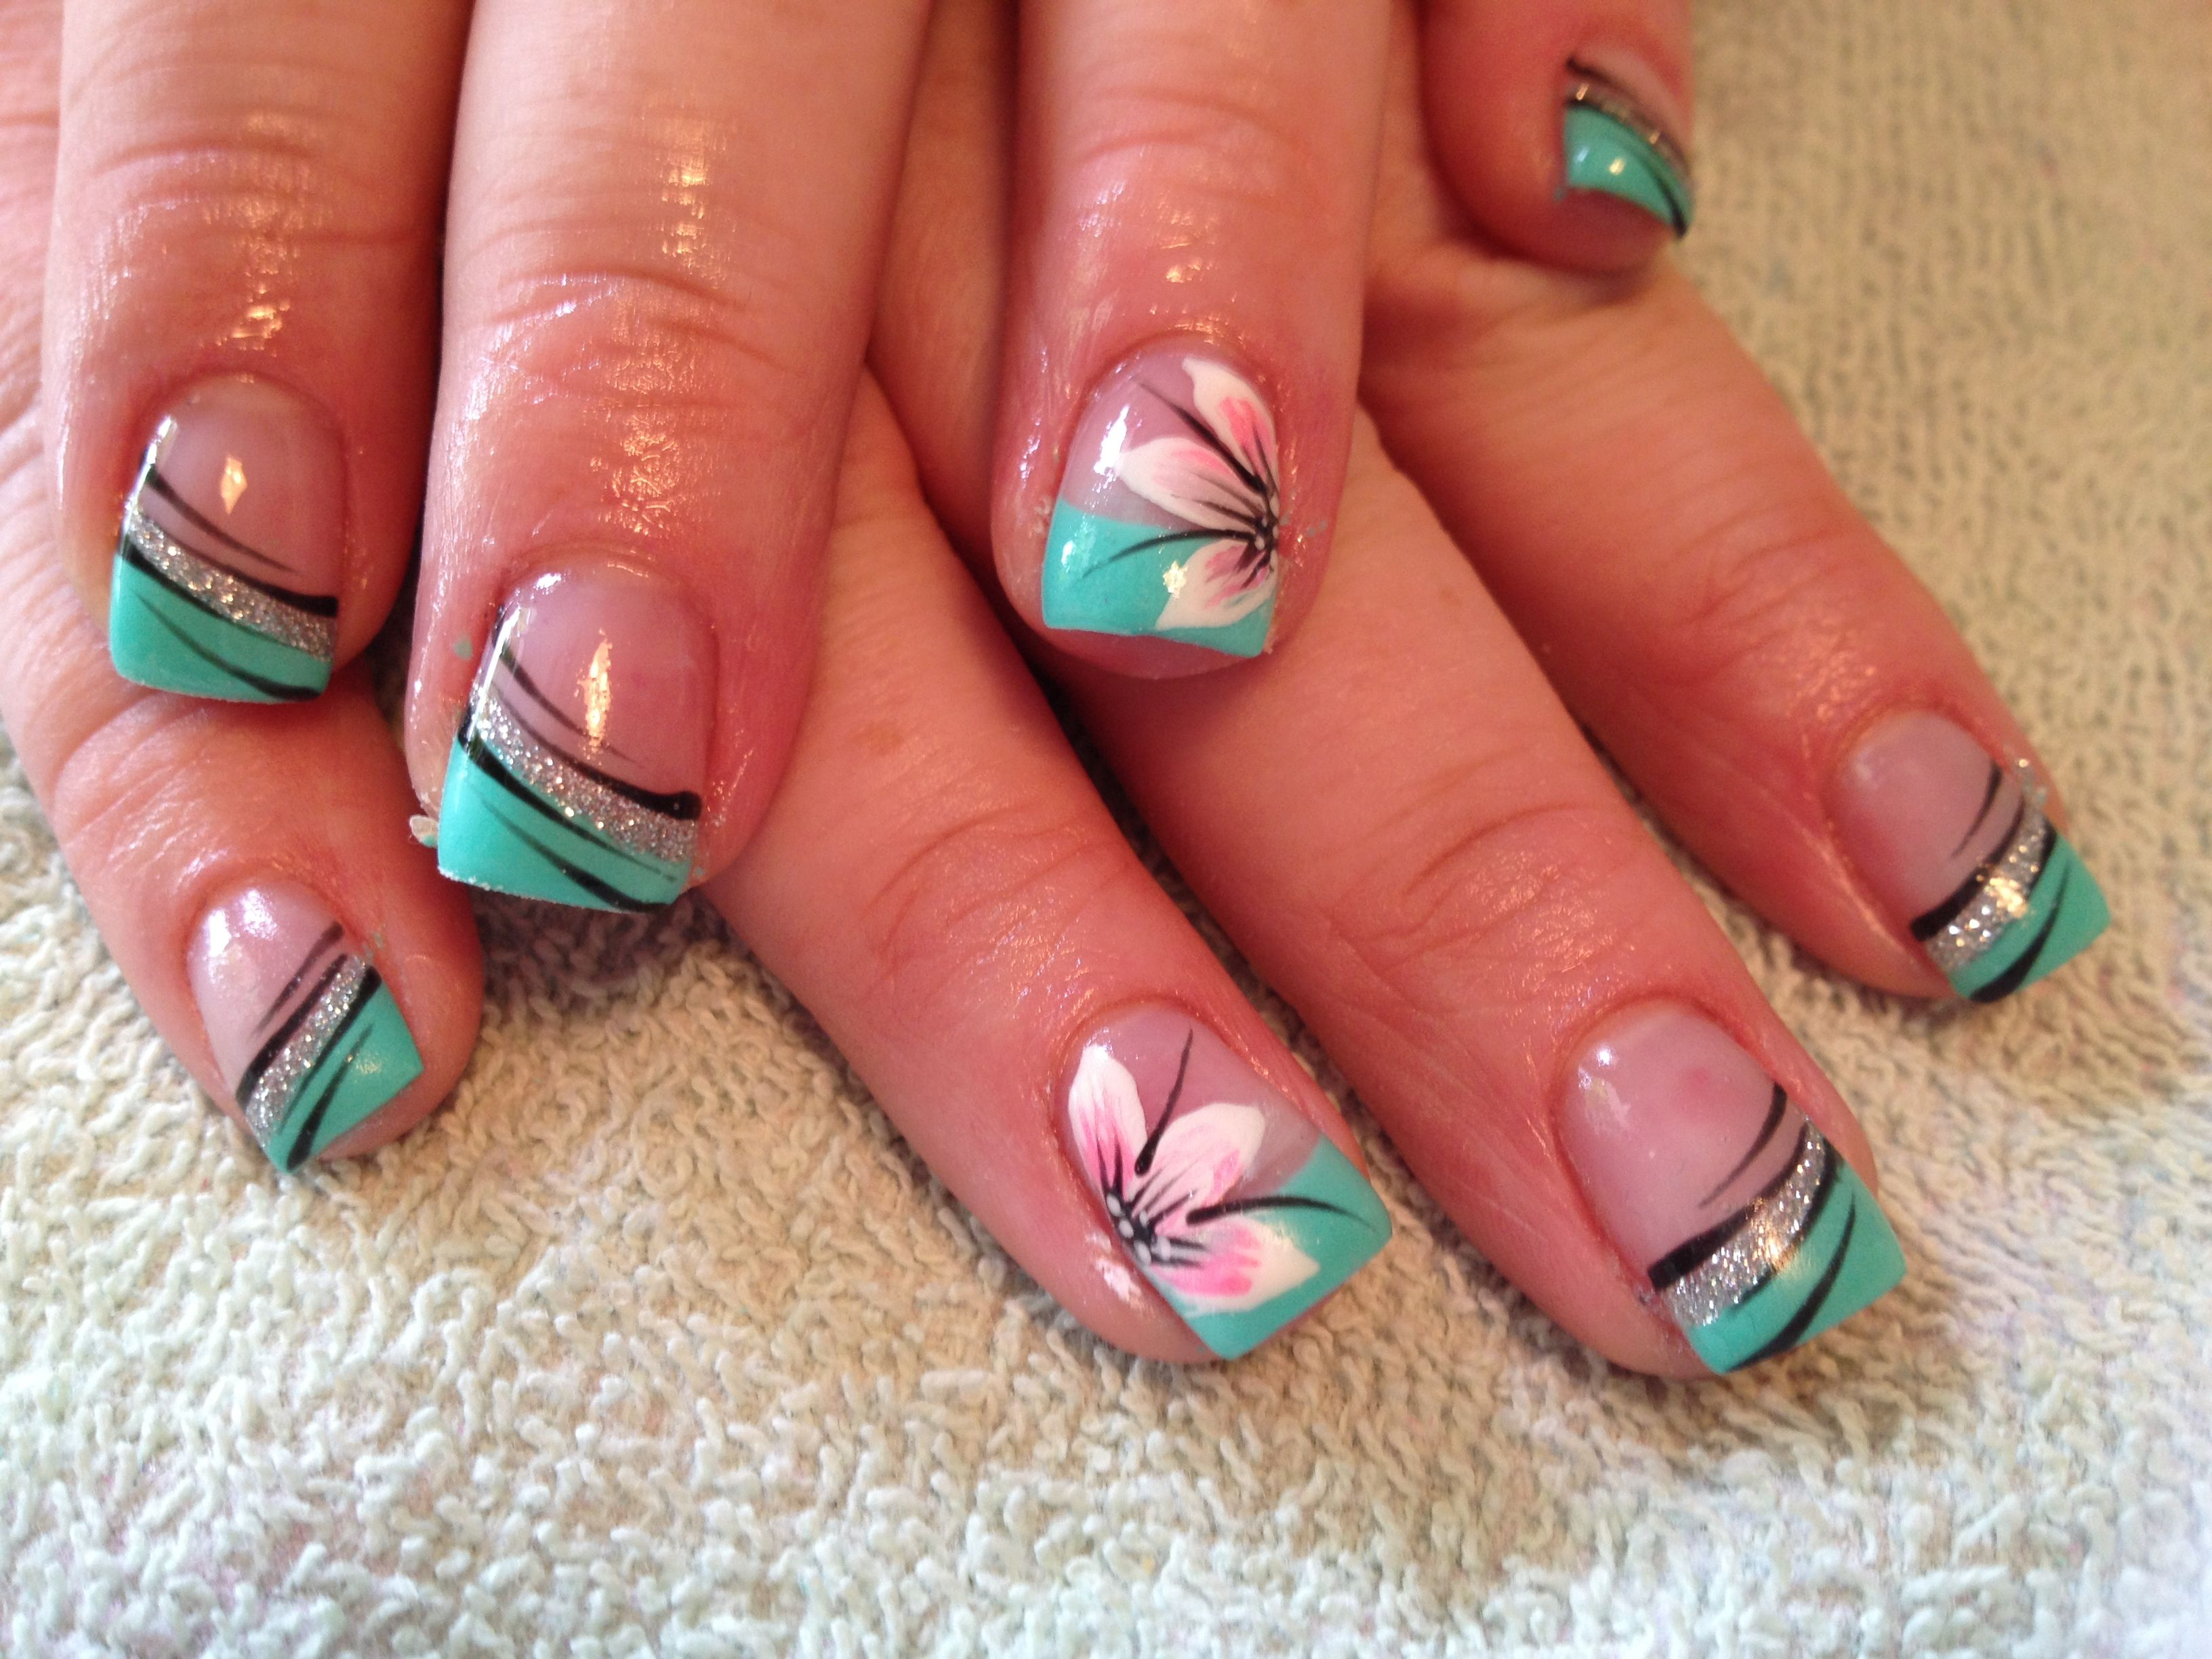 Nail Tip Designs Ideas french tip nail design ideas 428 Turquoise Nails With Flowers